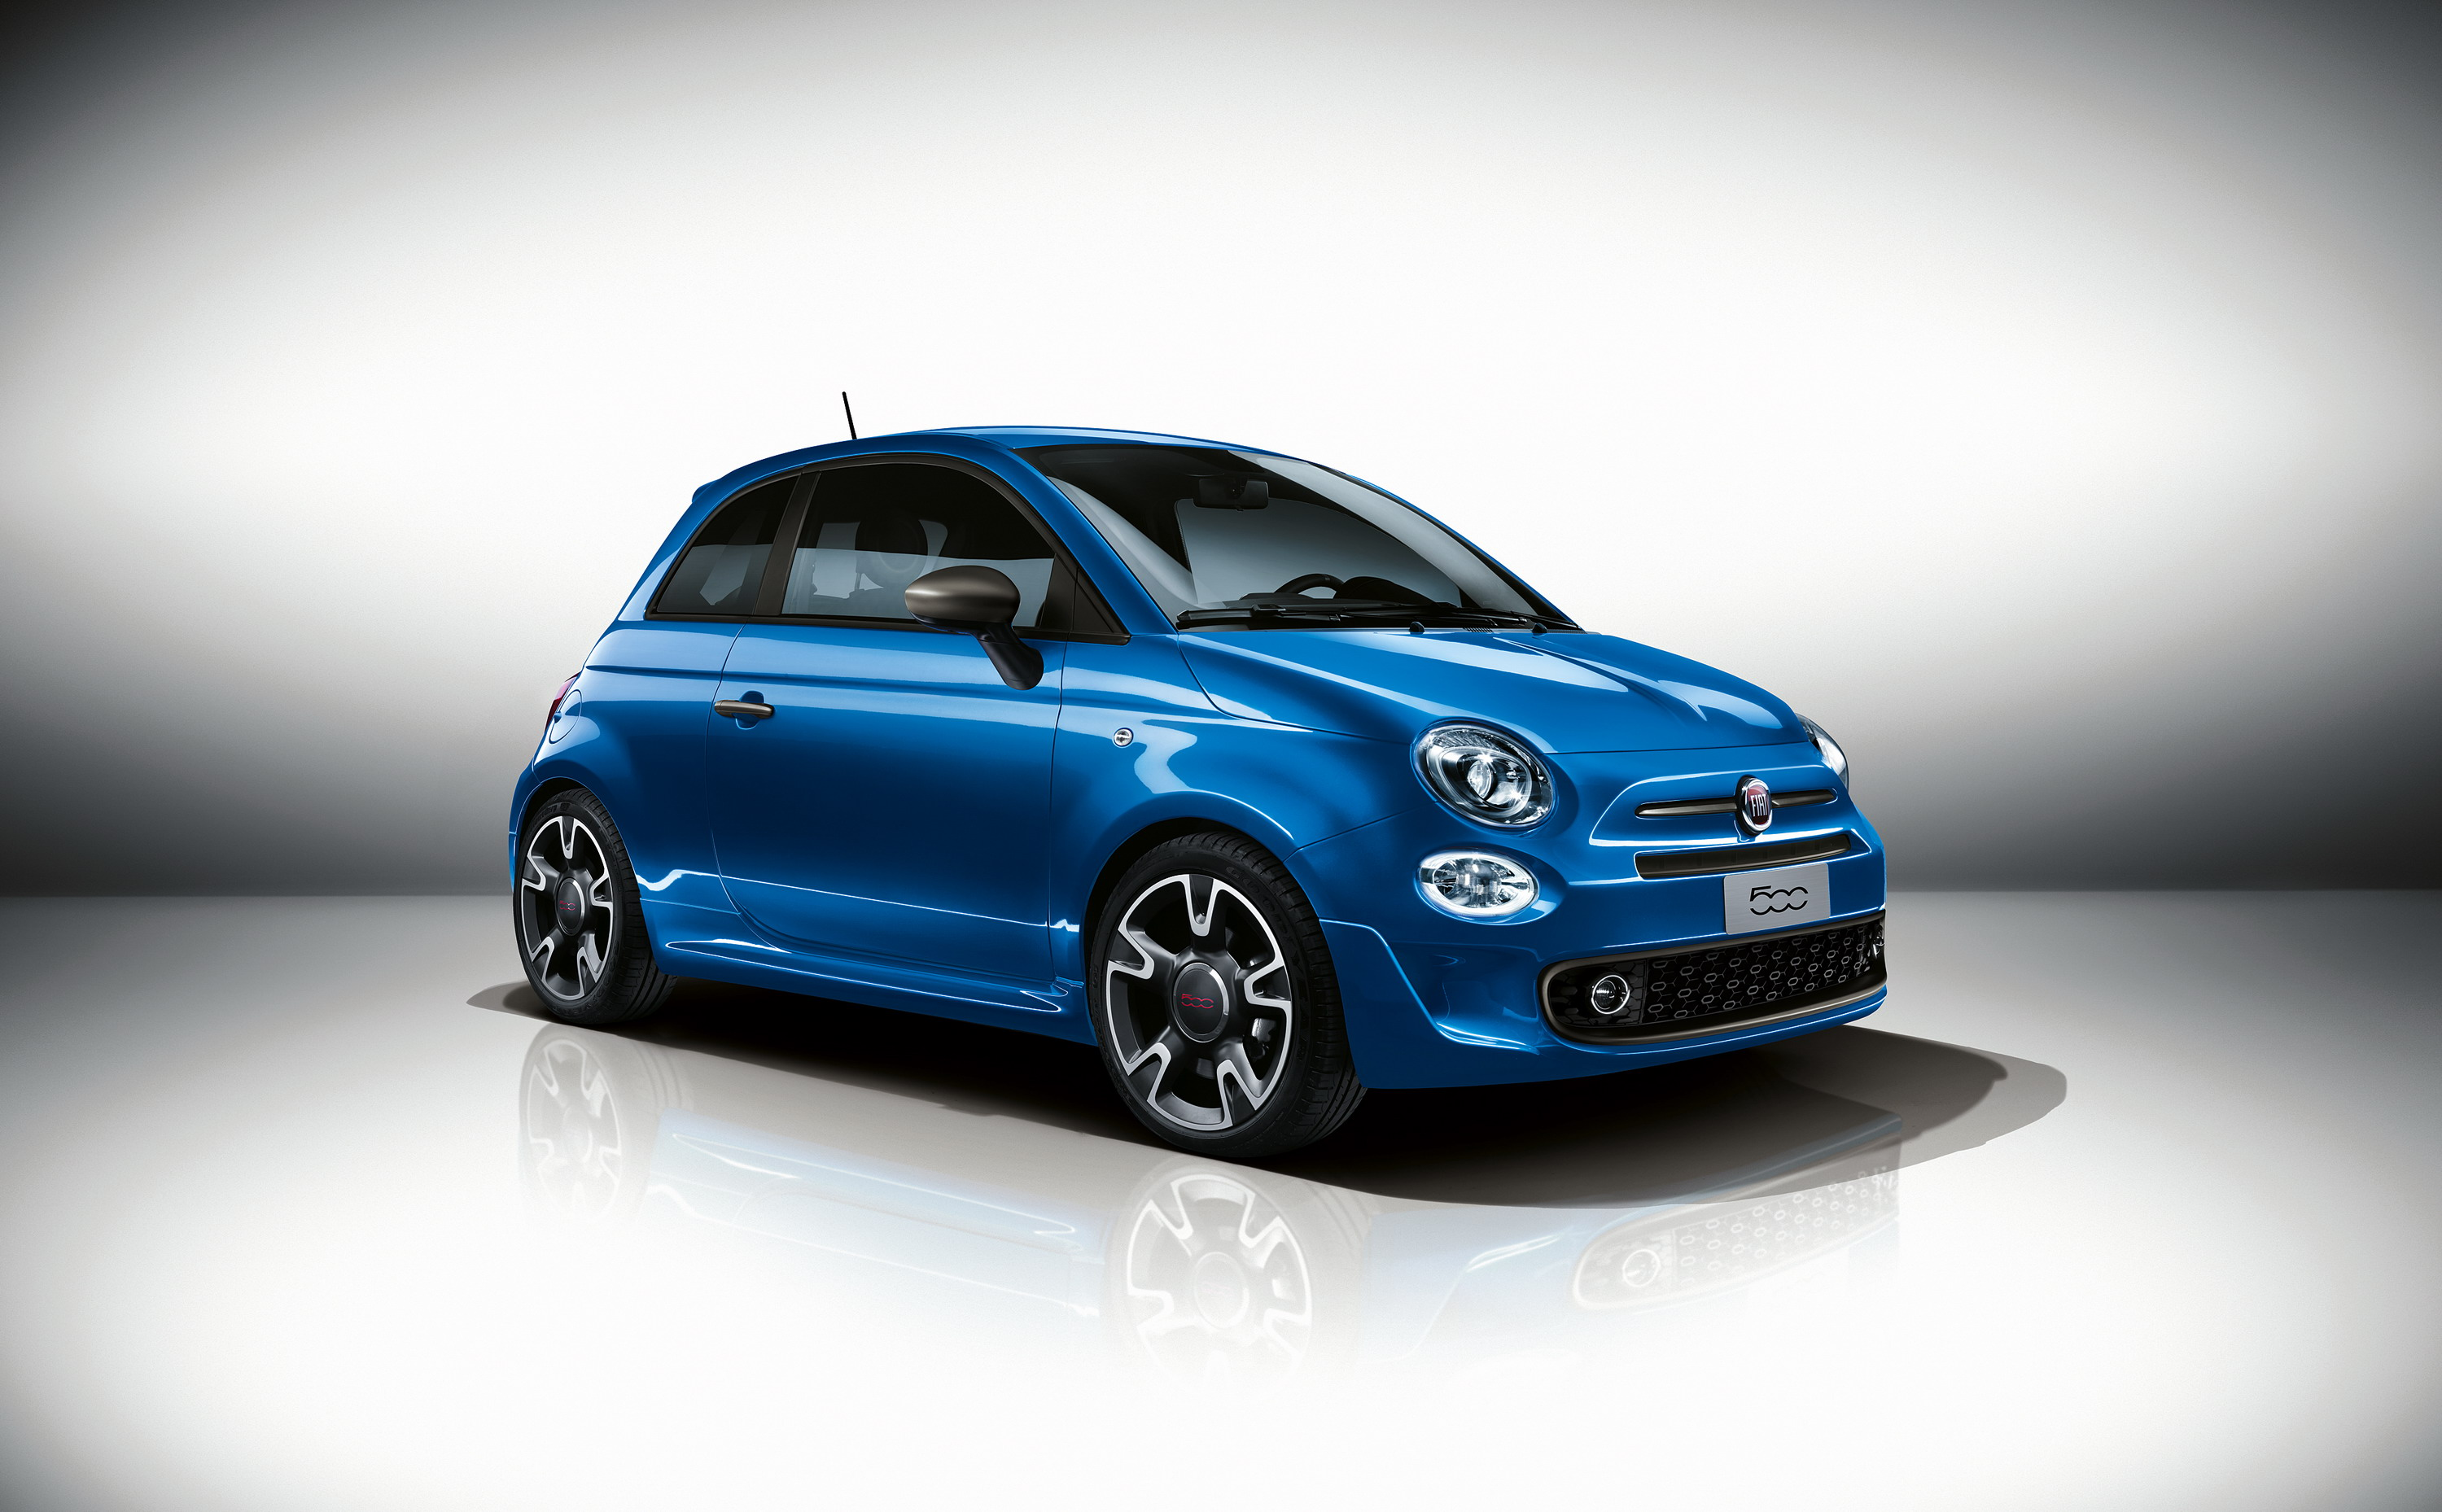 overview prices fiat reviews small ratings reports cars consumer car stillb price